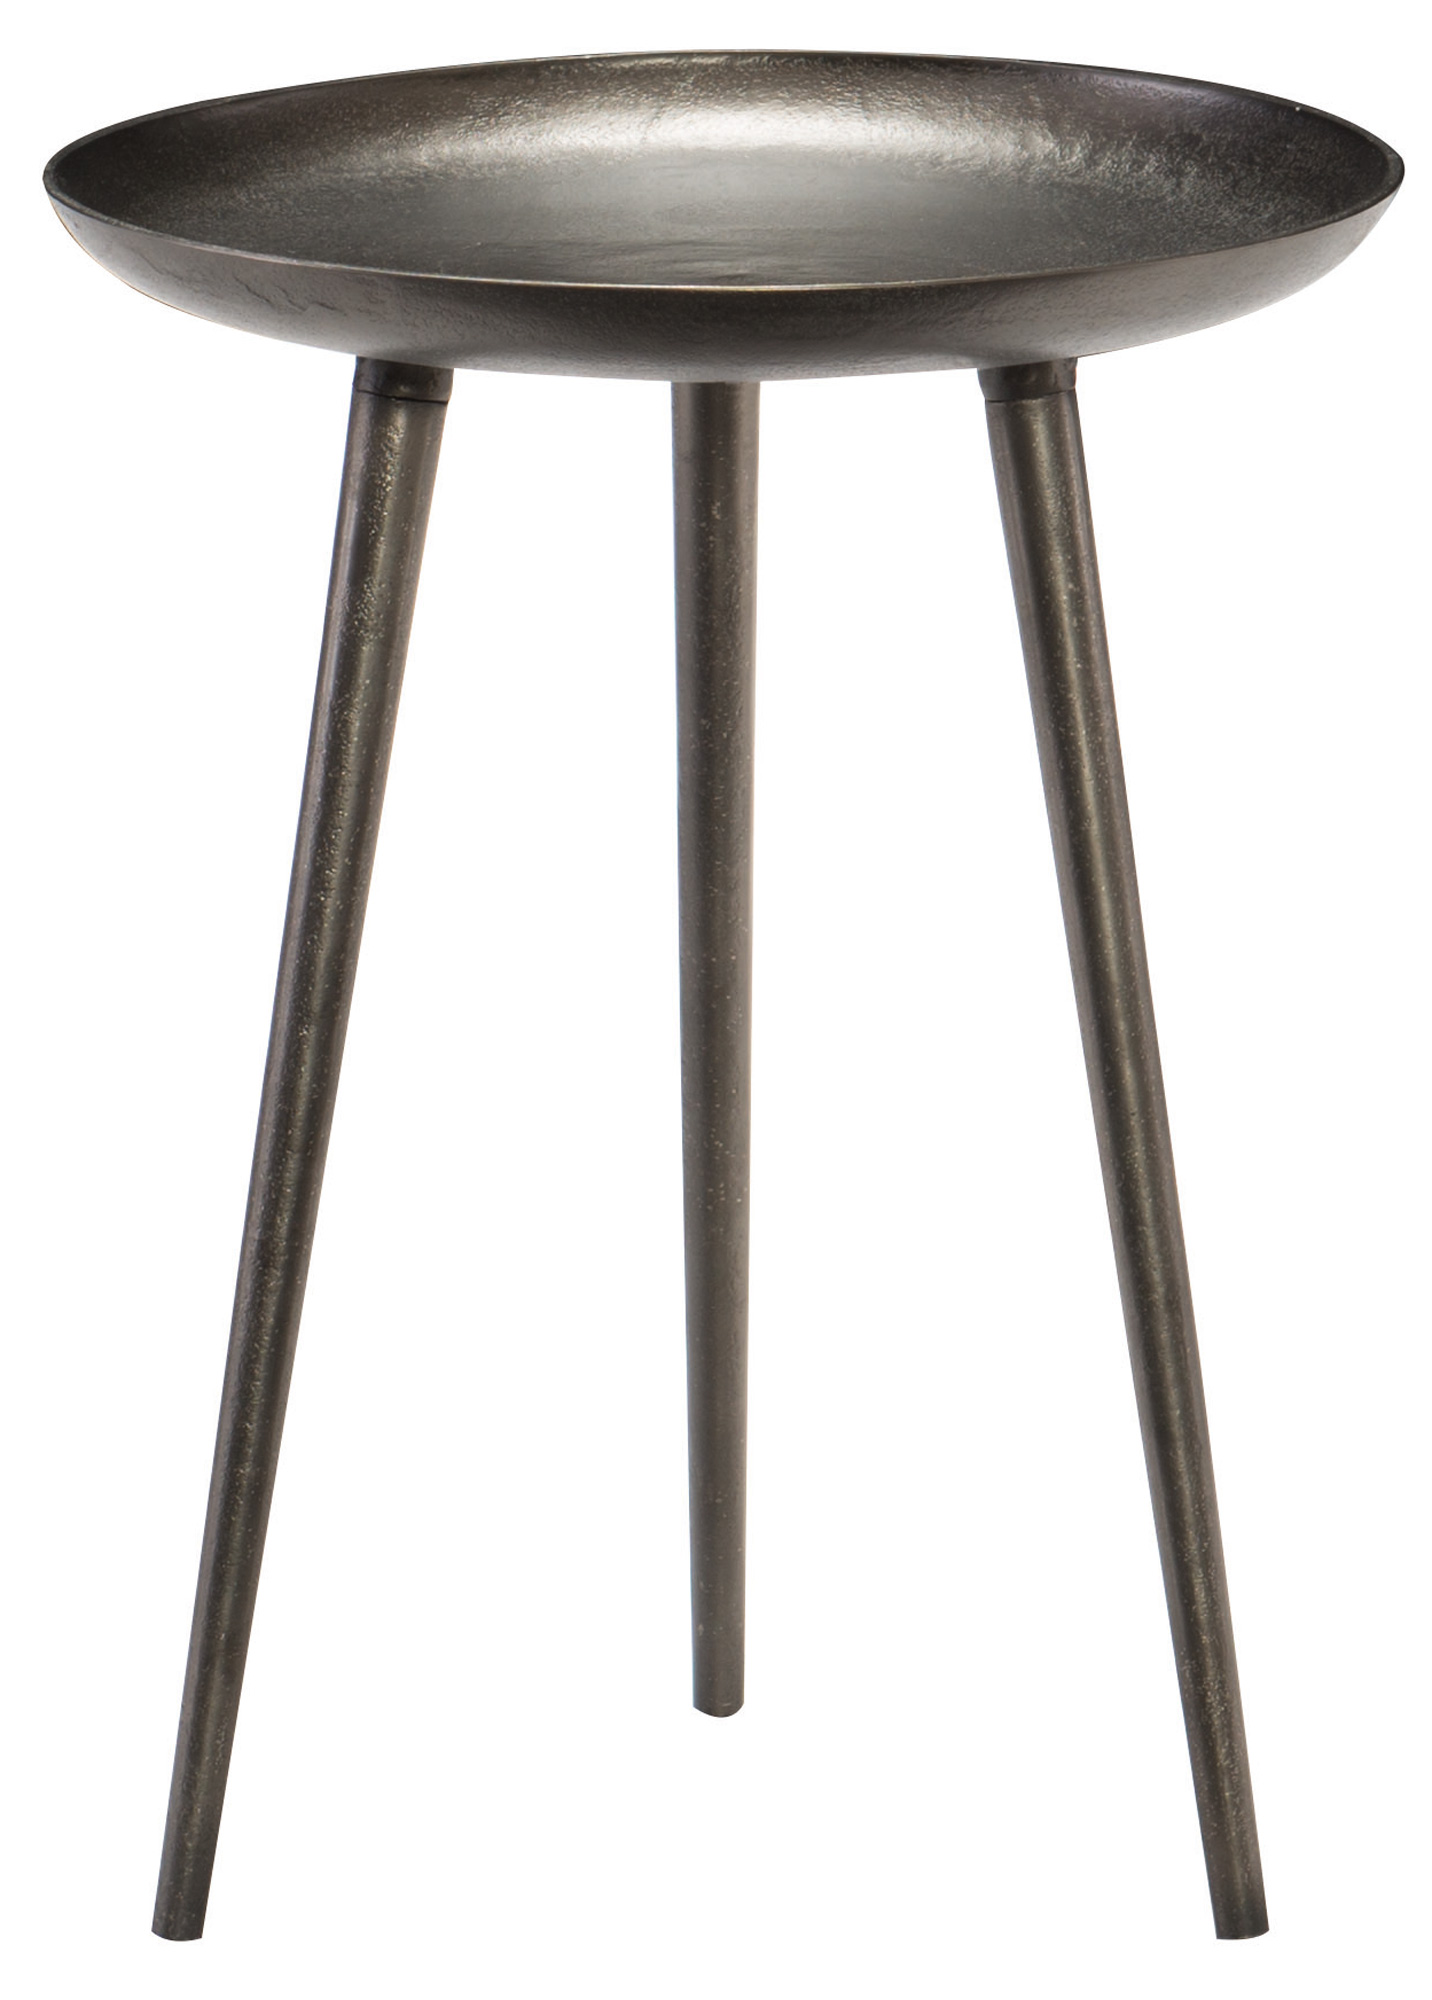 chair side tables canada upholstered folding chairs with arms round chairside table bernhardt